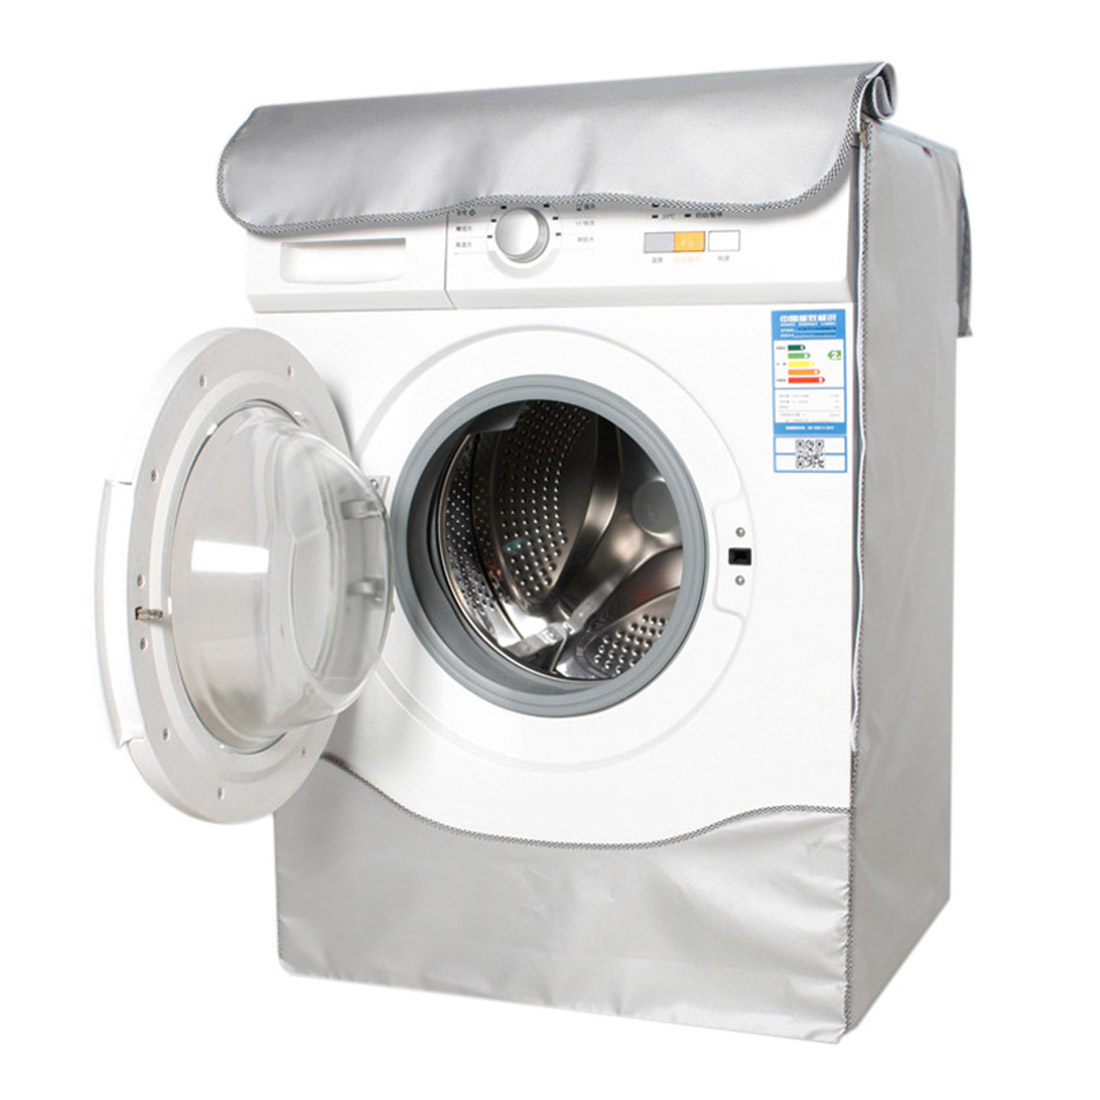 2019 Hot Washing Machine Covers Waterproof Covers for Washing Machine Home Sunscreen Washing Machine Dustproof Covers